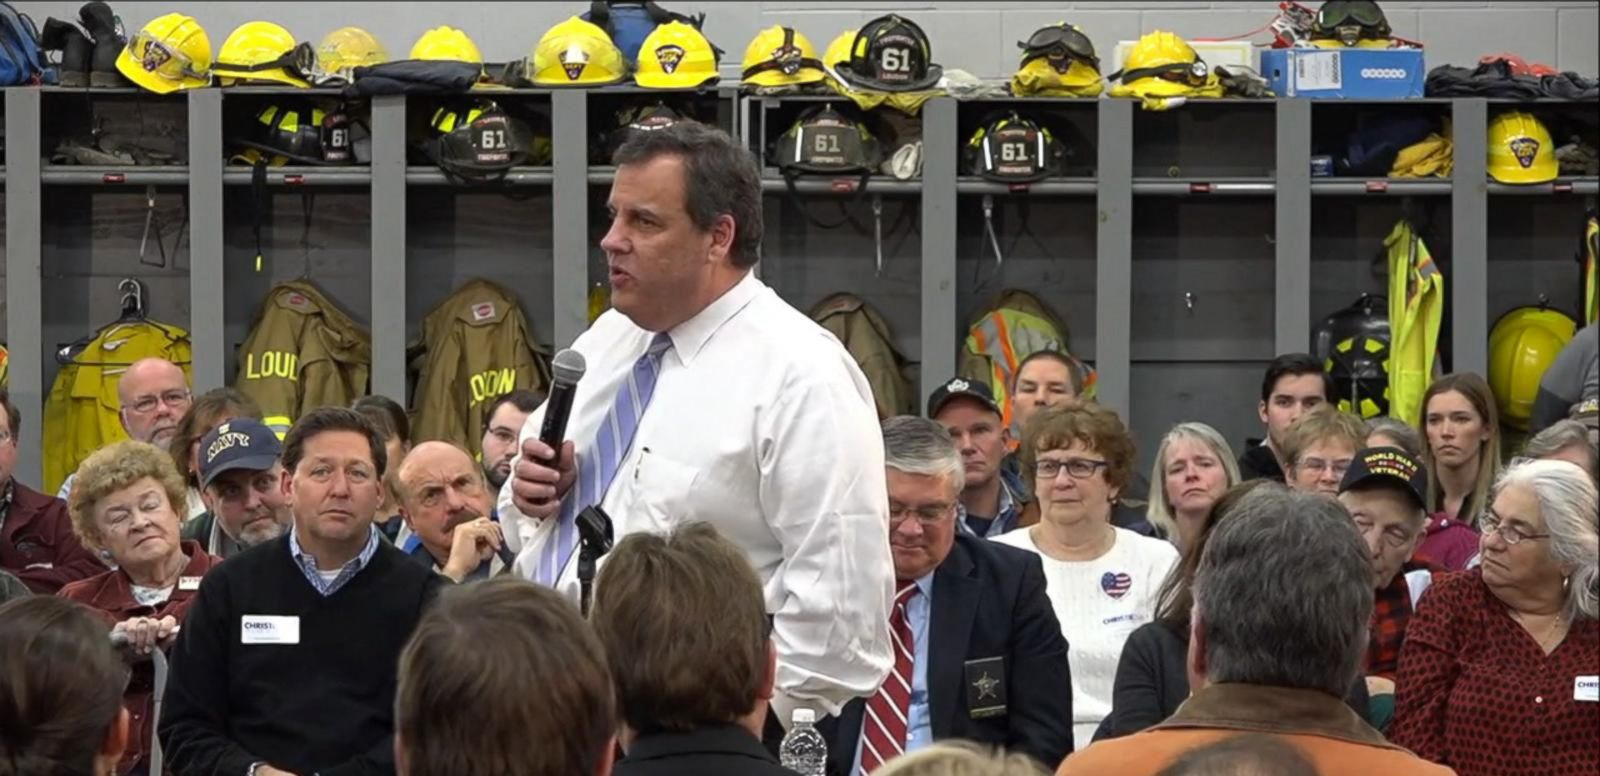 VIDEO: Chris Christie Takes on Donald Trump